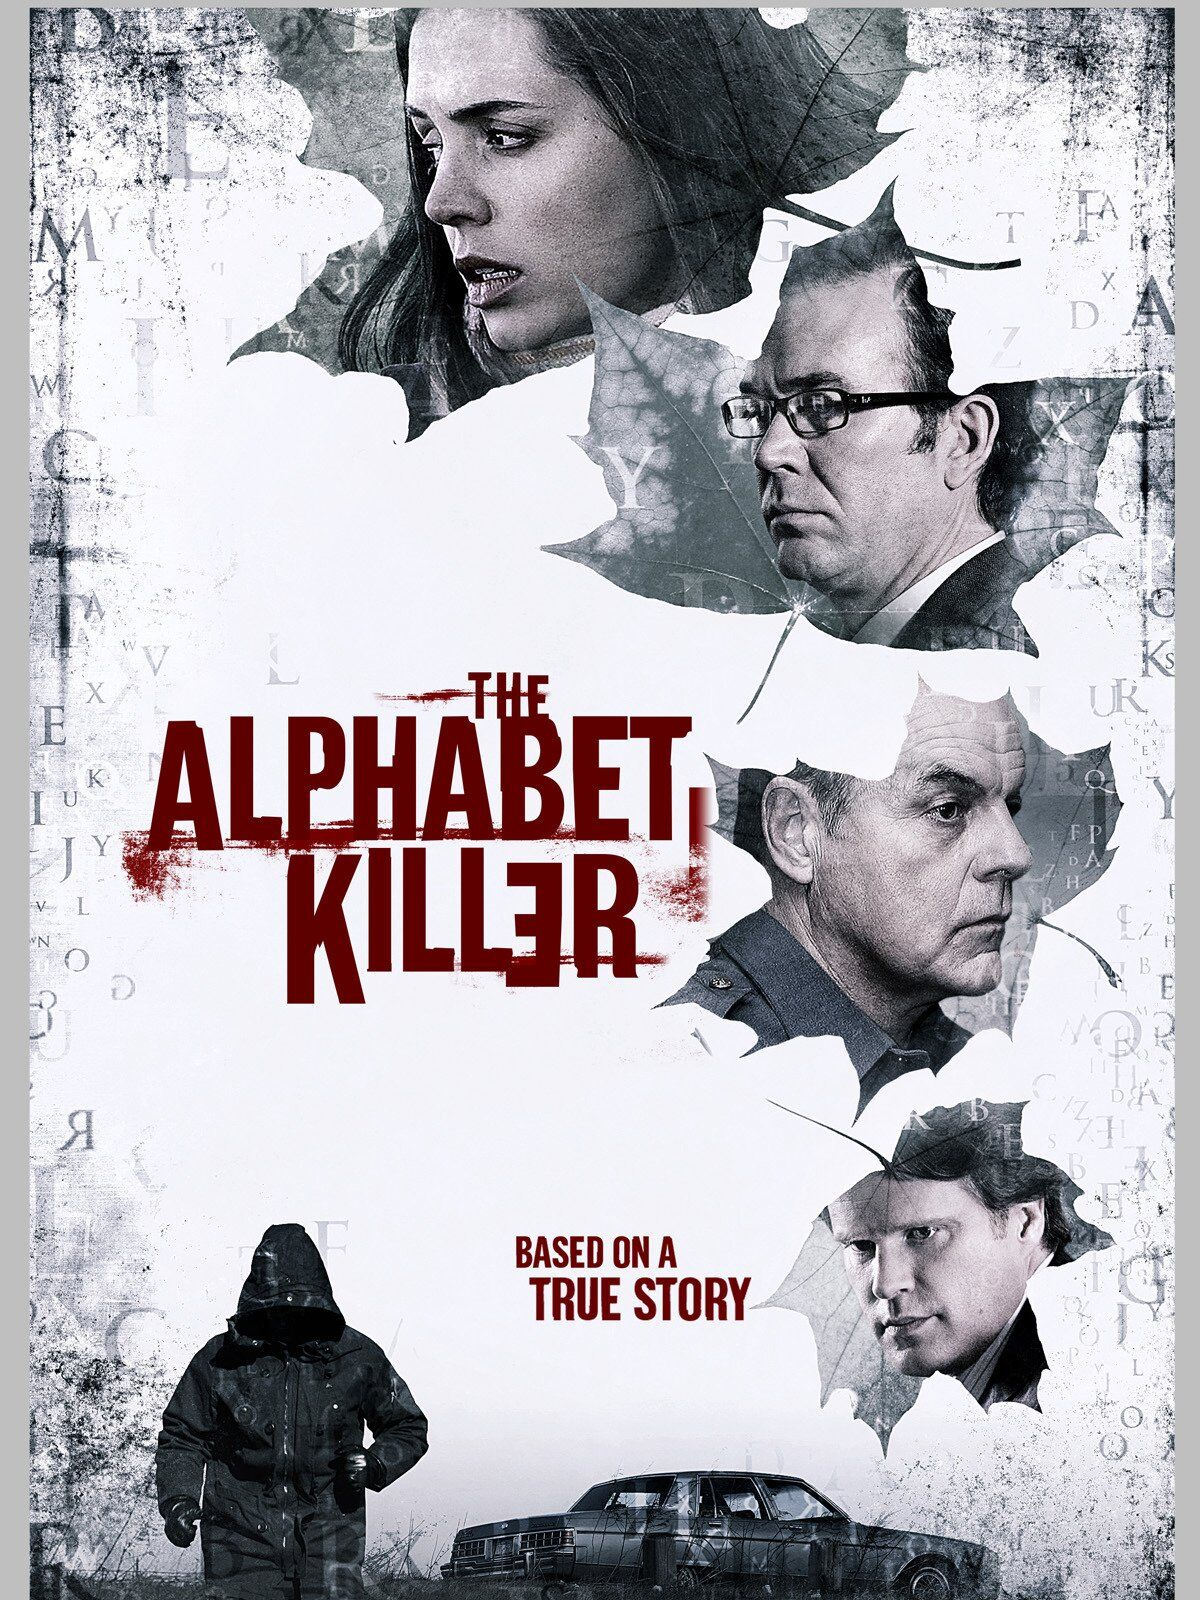 The Alphabet Killer (2009)